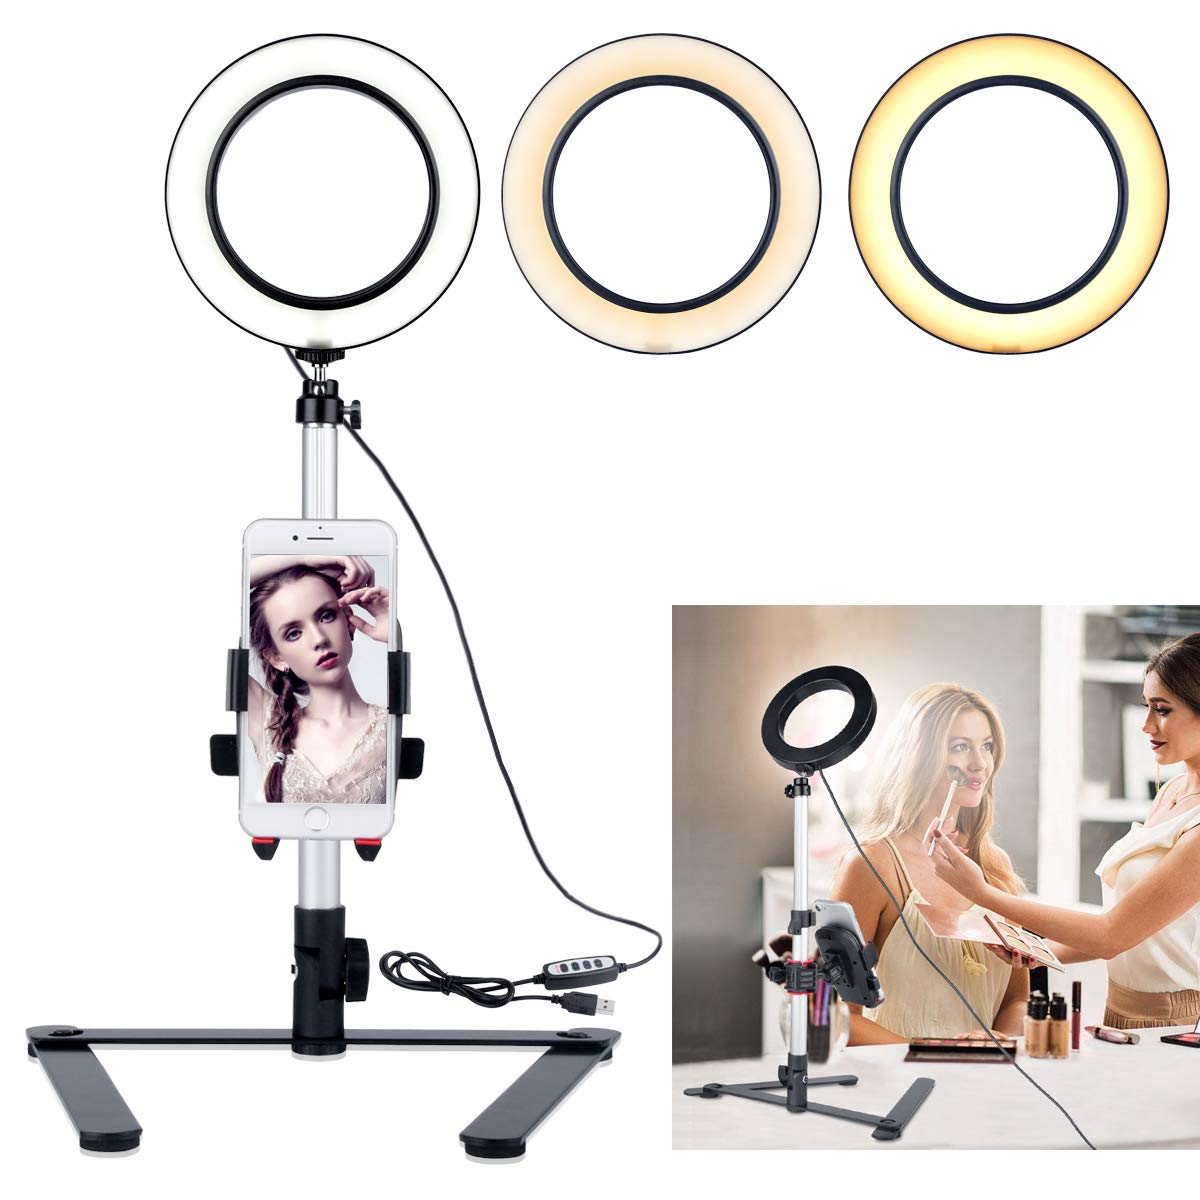 B-Land 5.7'' Ring Light with Desktop Stand for YouTube Video and Makeup, Mini LED Camera Light with Cell Phone Holder Table Top LED Lamp with 3 Light Modes & 11 Brightness Level